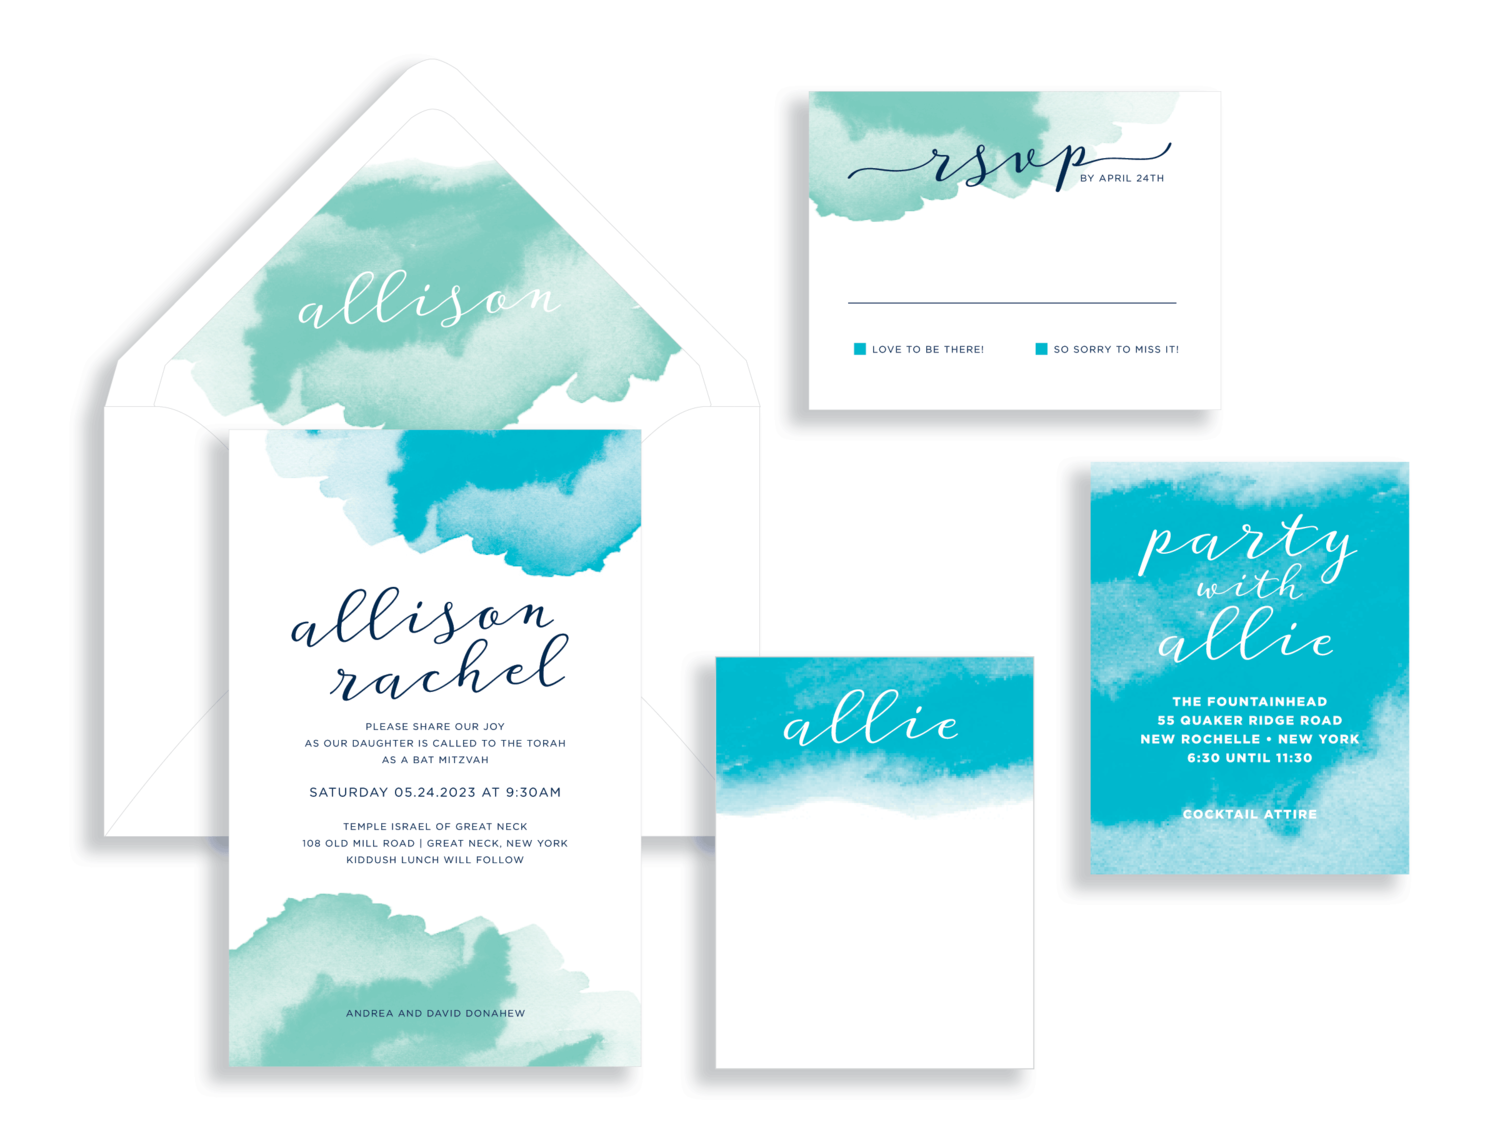 Allison turquoise and green watercolor bat mitzvah invitation in Fairfax Virginia from Staccato with personalized service, great selection!